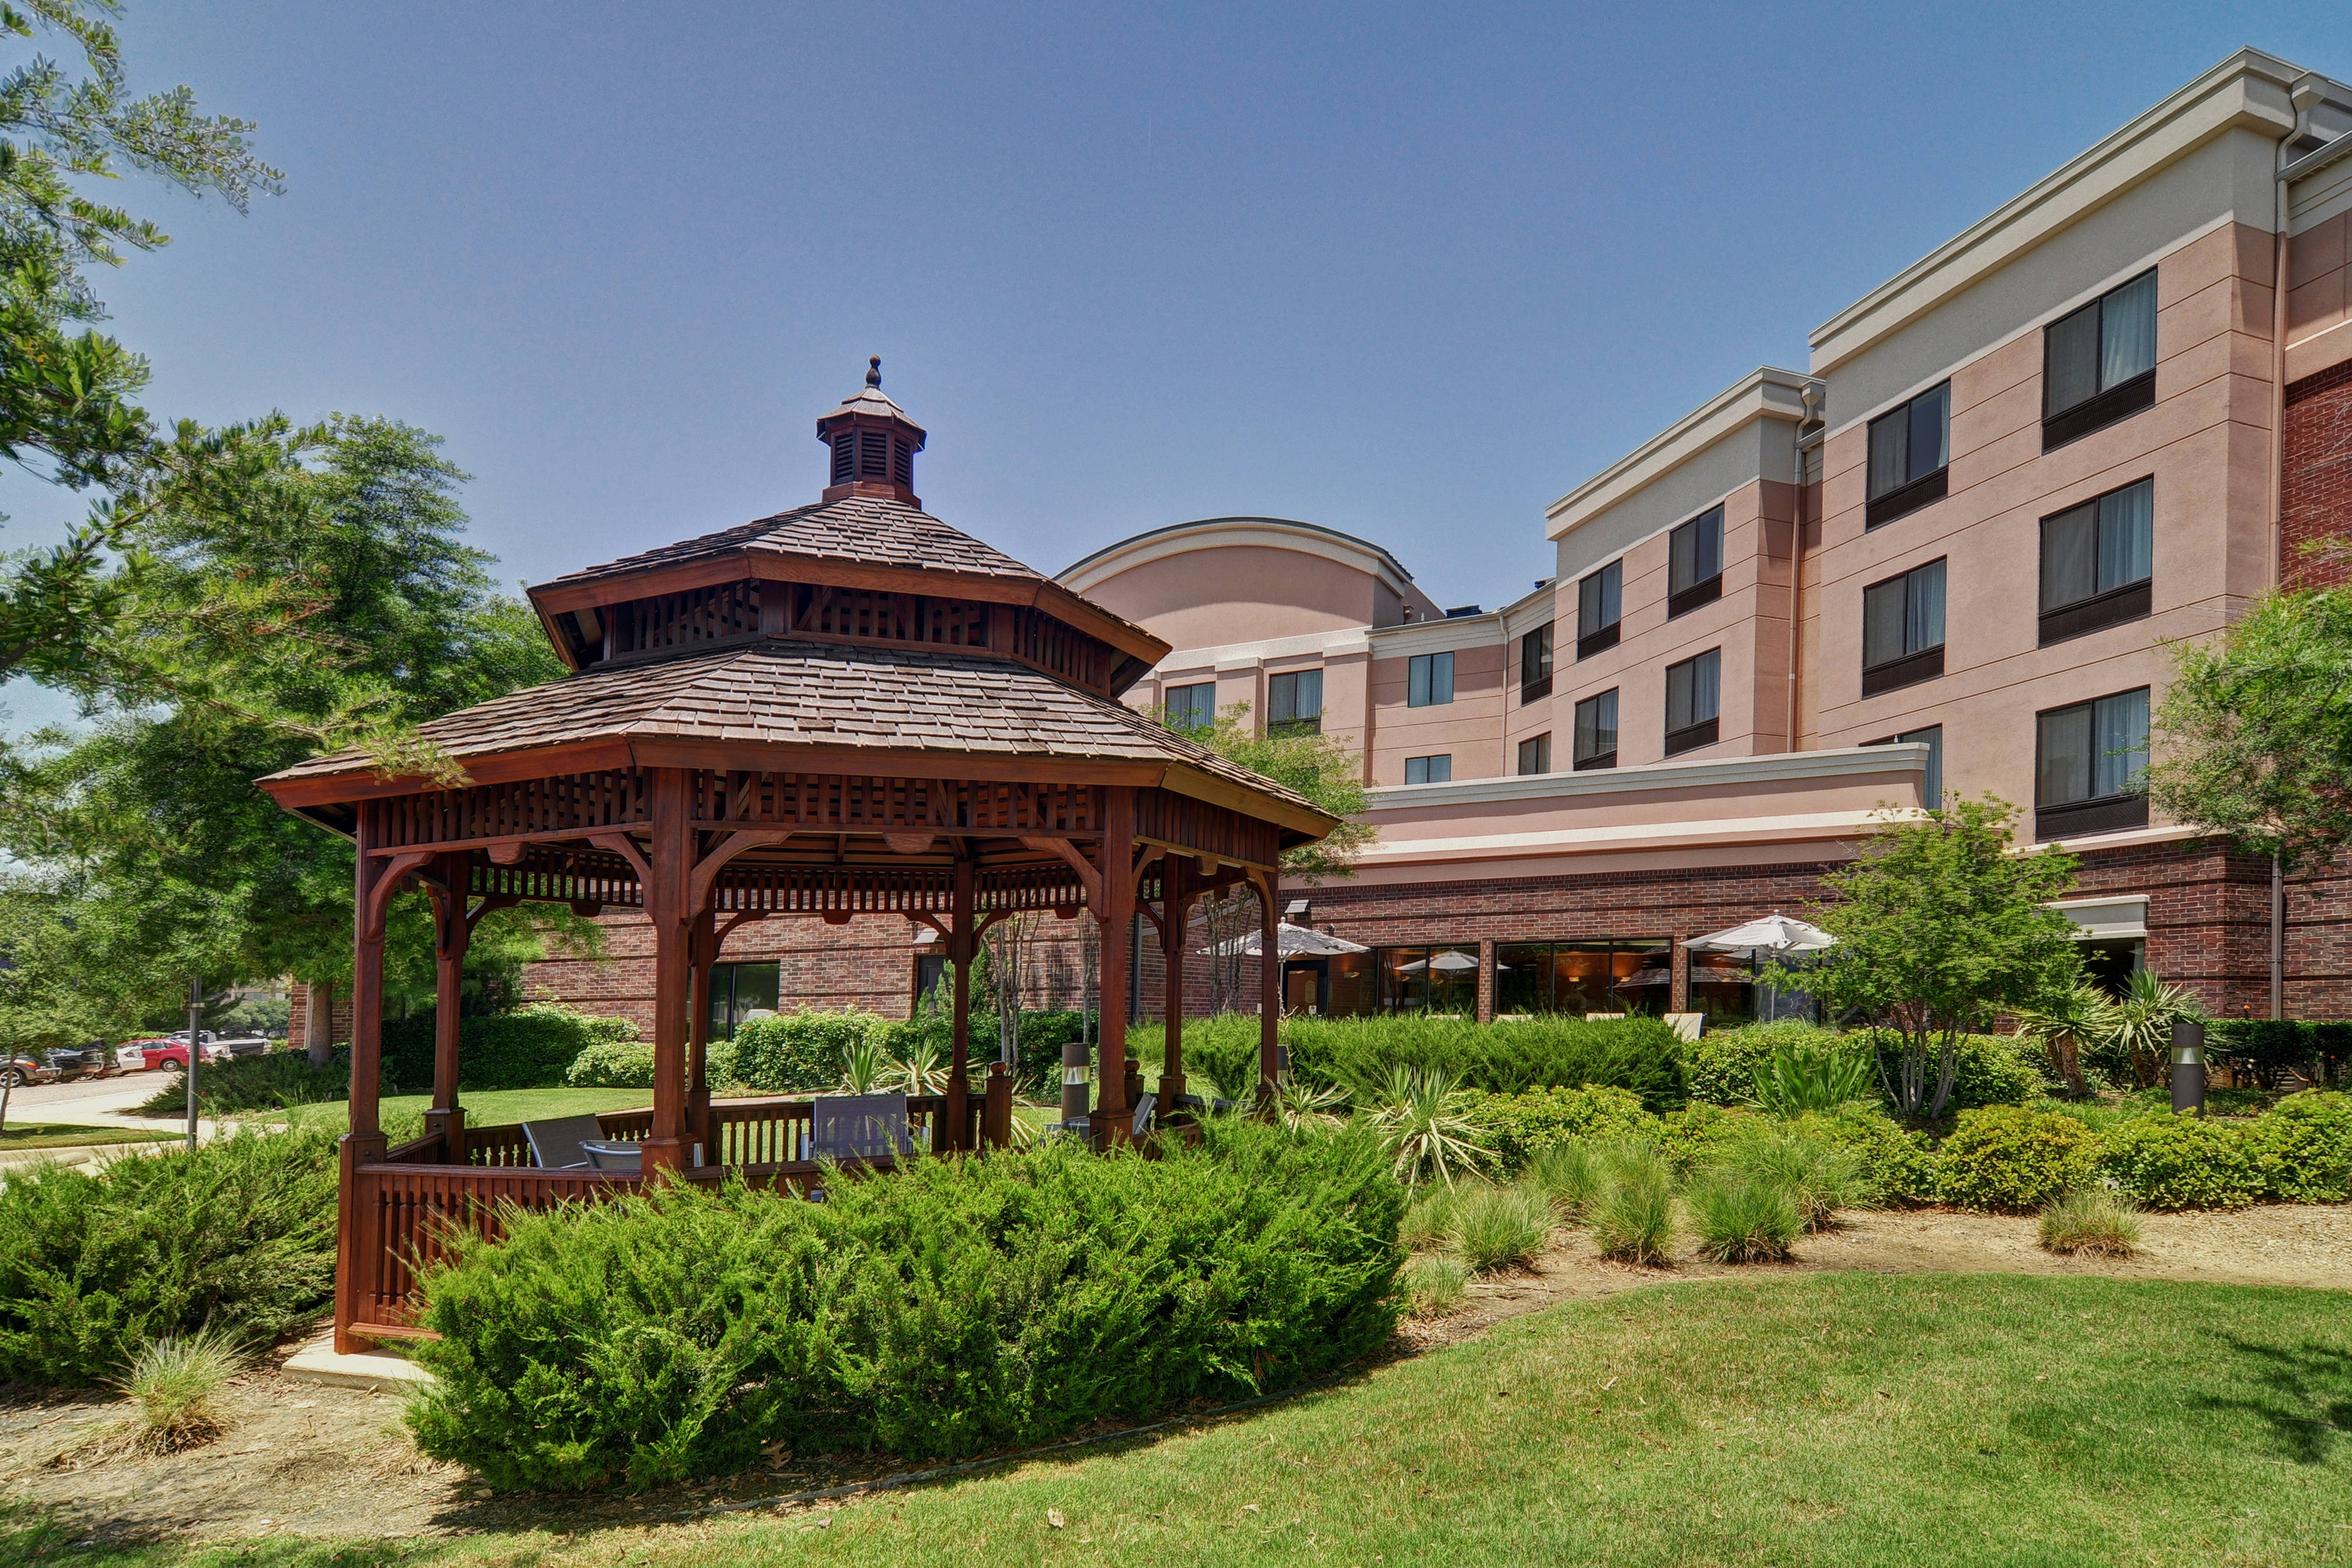 DFW airport hotel outdoor gazebo